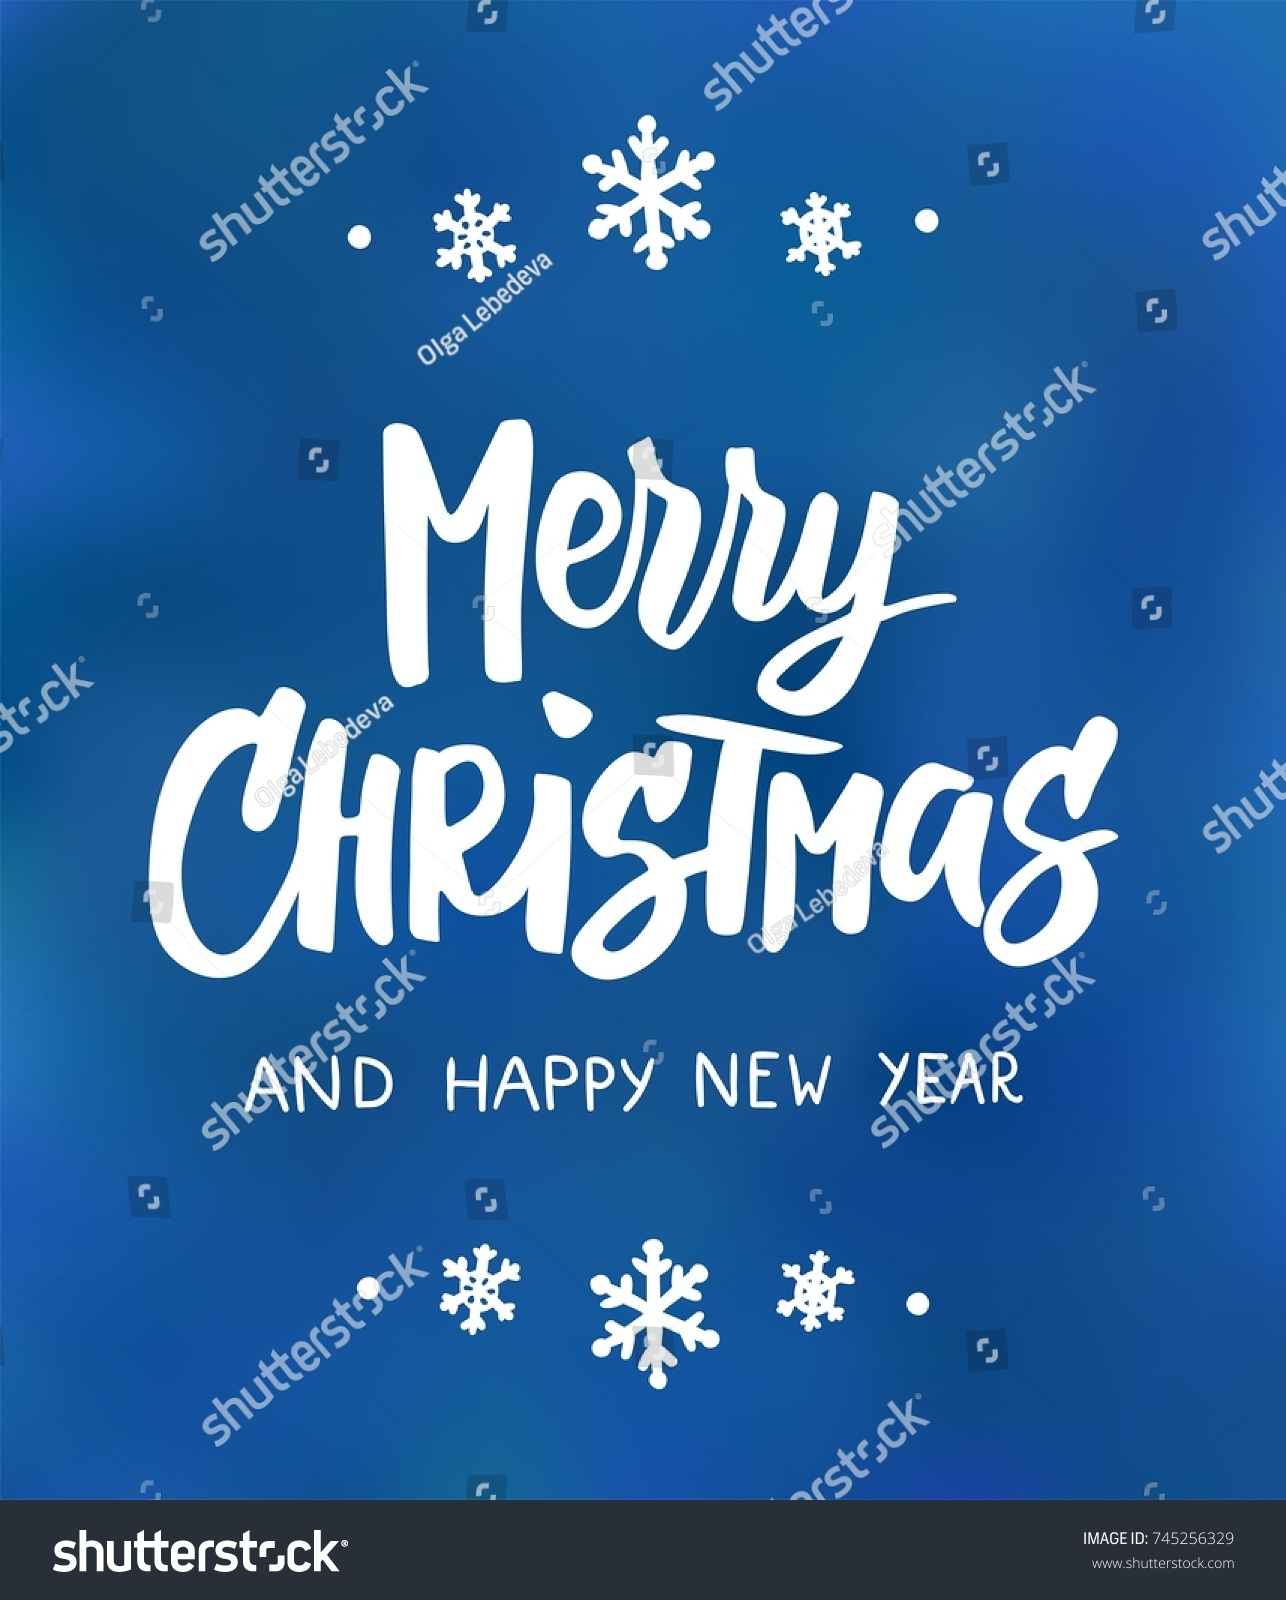 Merry Christmas Happy New Year Text Stock Vector Royalty Free